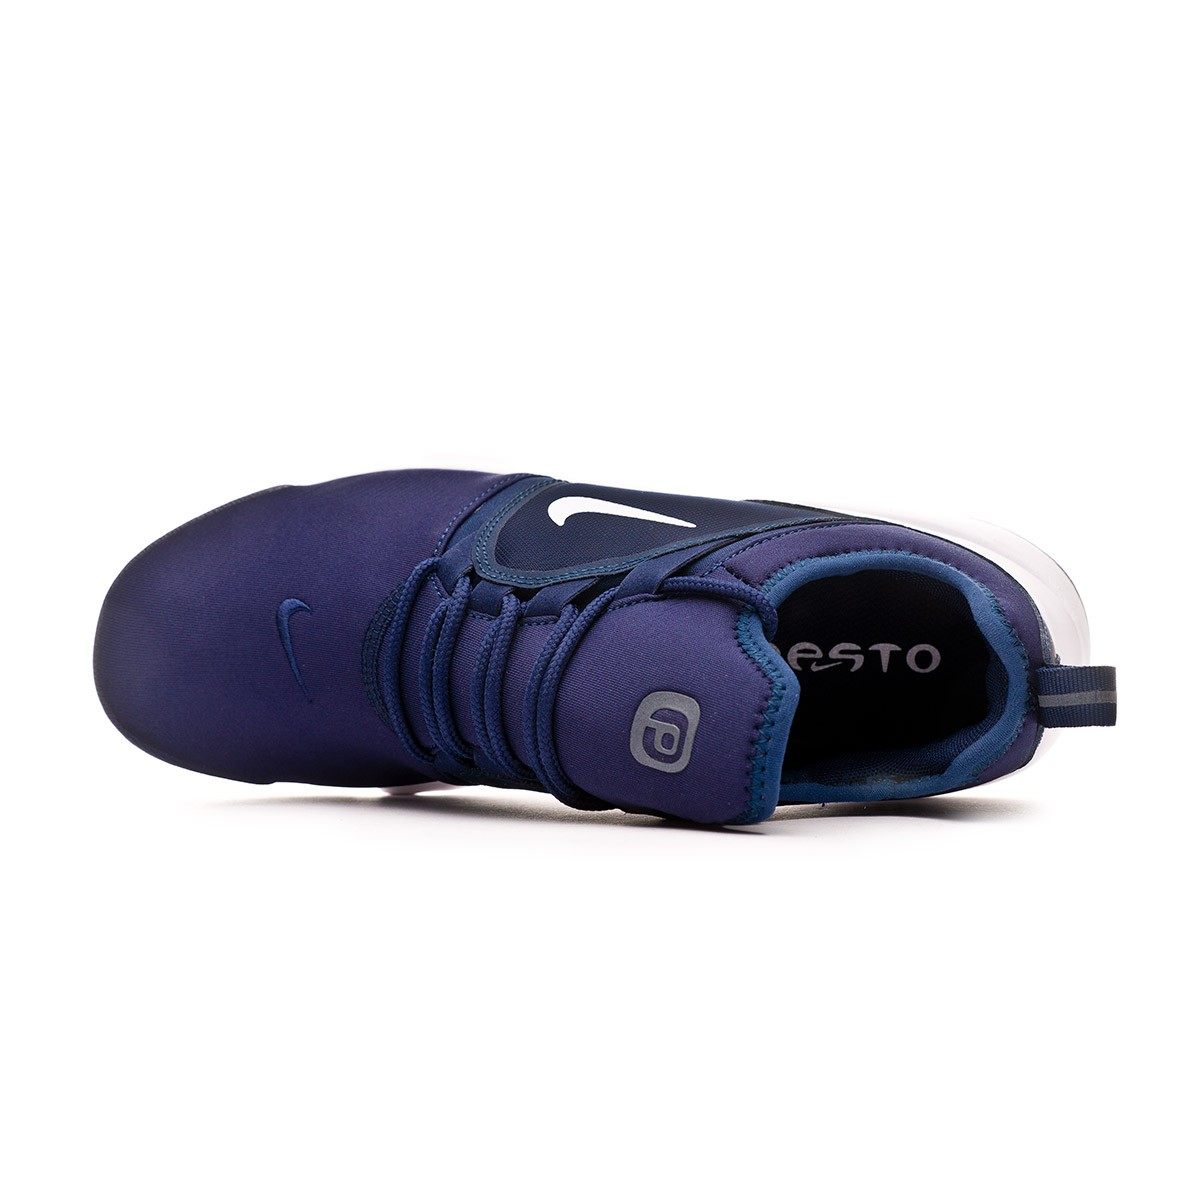 separation shoes d15b8 98a73 Trainers Nike Presto Fly World 2019 Mifnight navy-White-Black - Football  store Fútbol Emotion